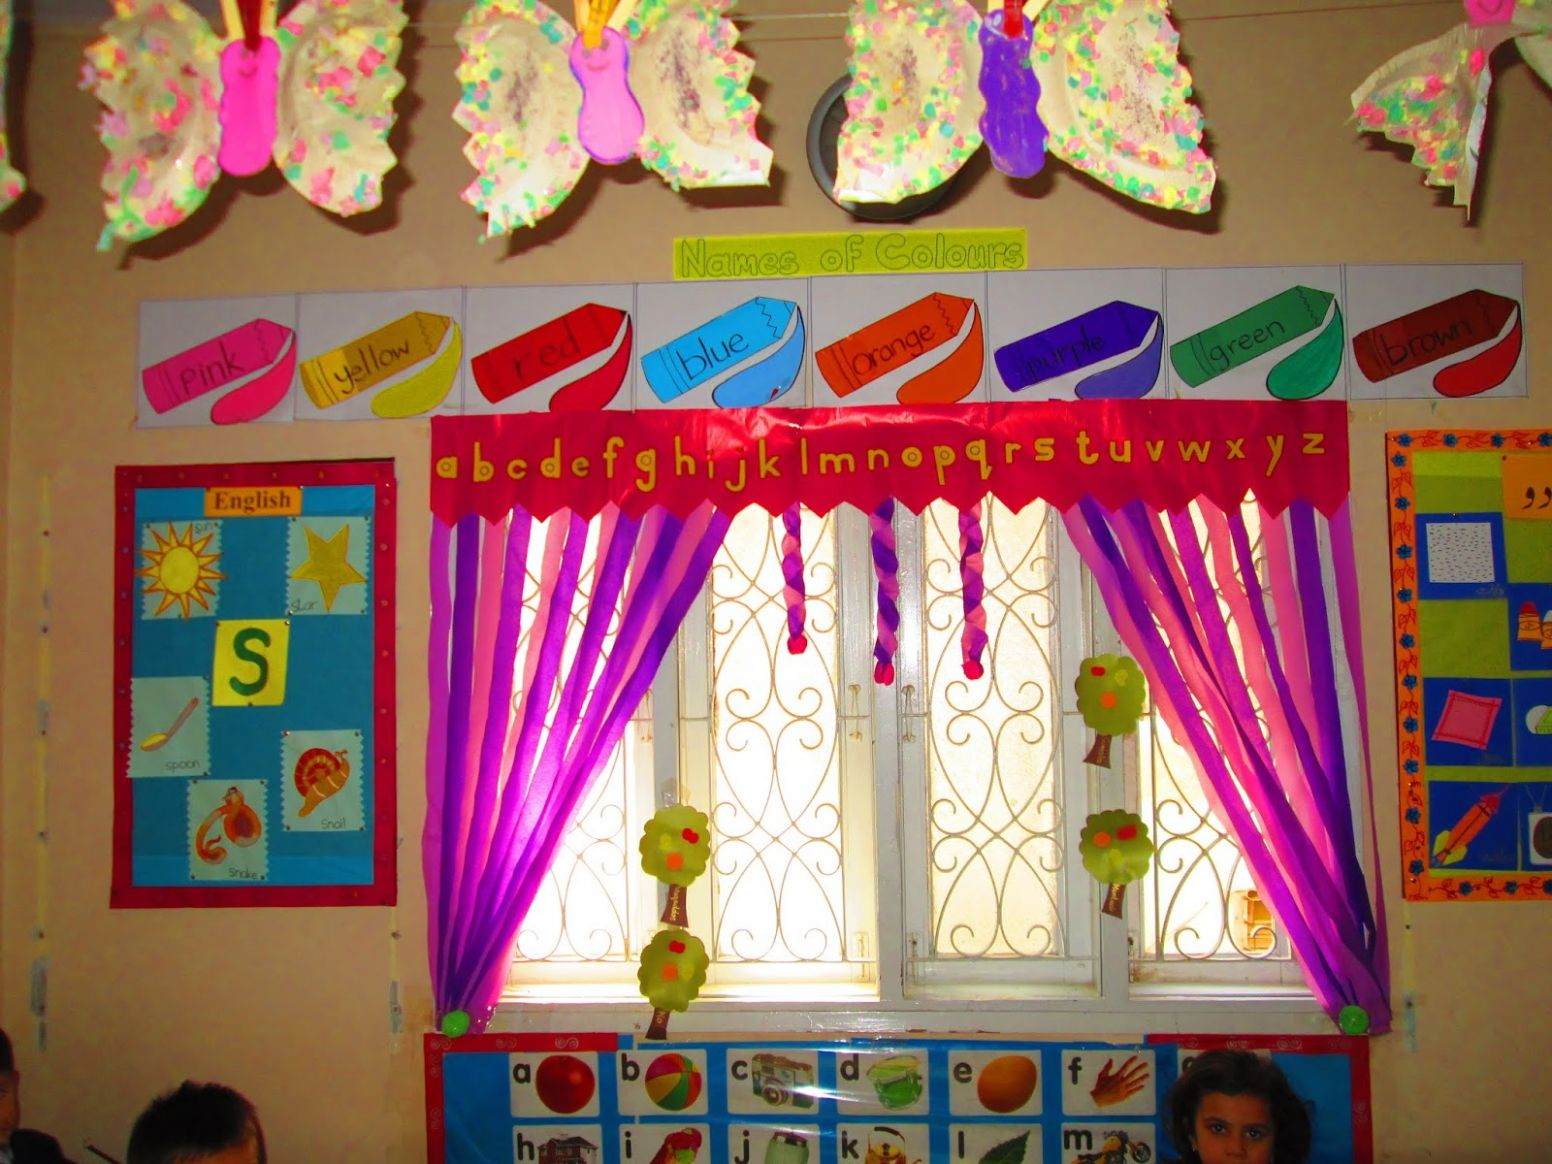 educational blog: decoration ideas for kindergarten walls and windows - wall decoration ideas with ribbons